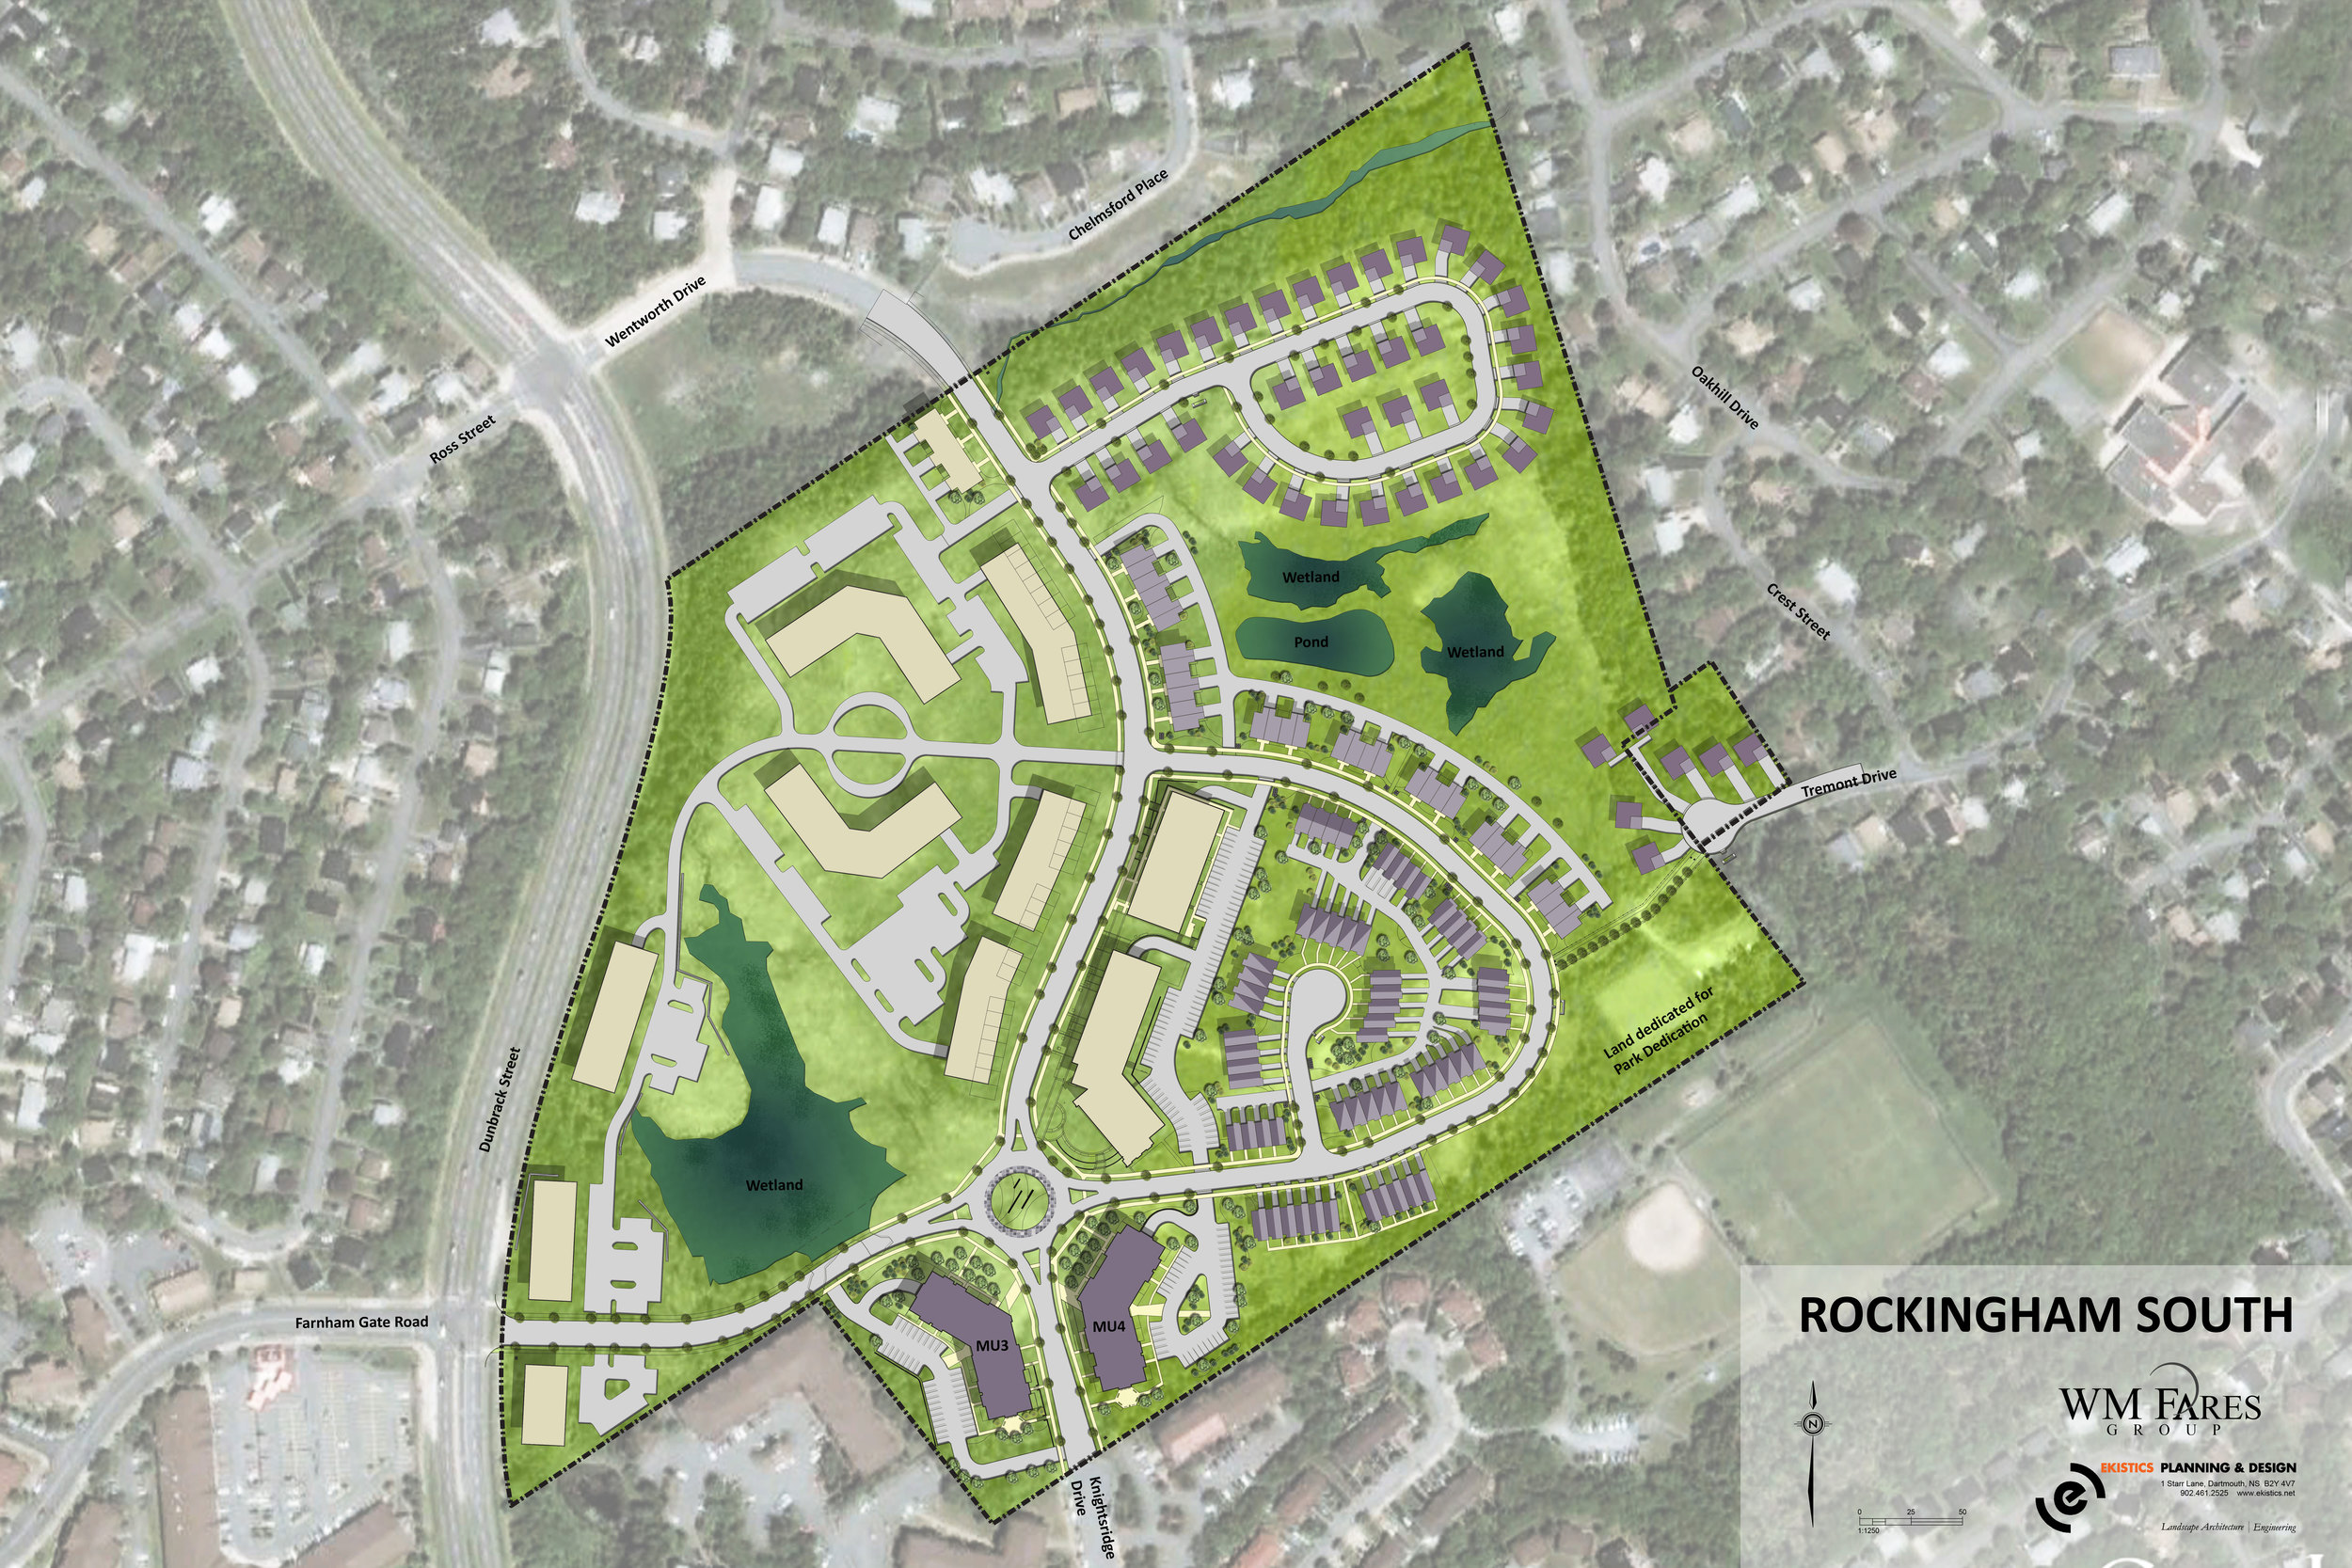 Rockingham-South-Master-Plan.jpg